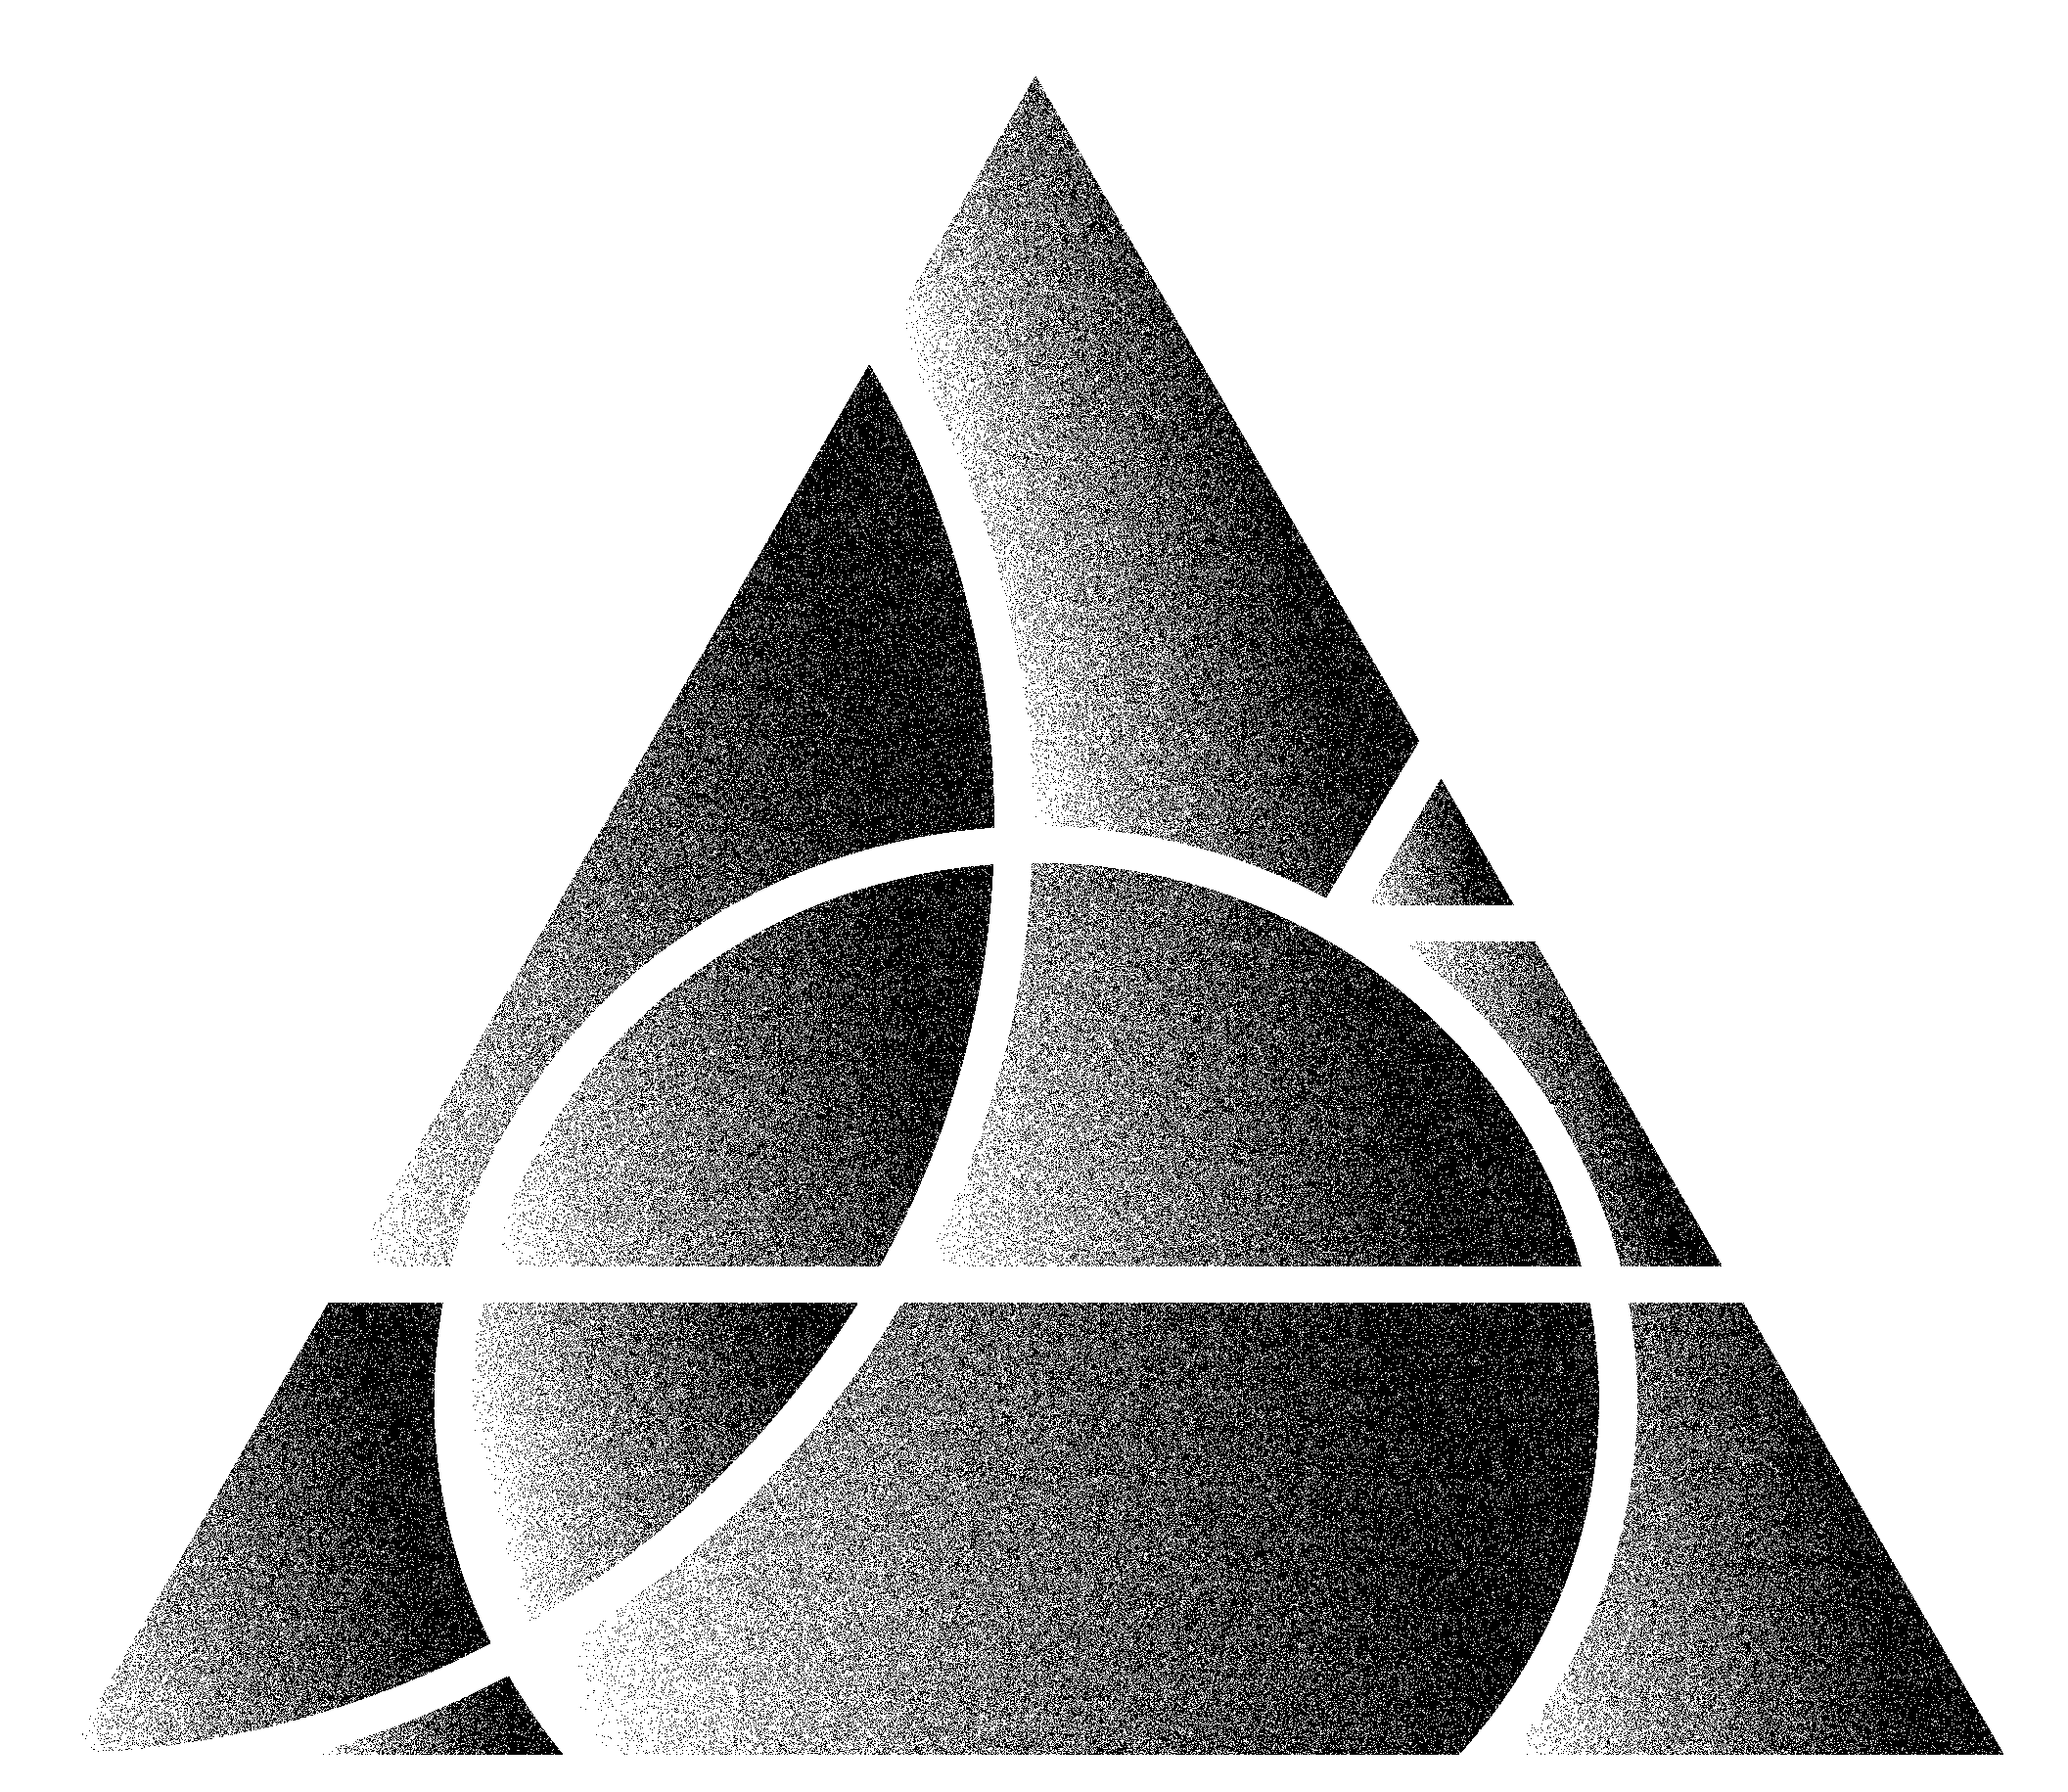 Black and White Grainey Pyramid Face with Circular Patterns overlayed in White